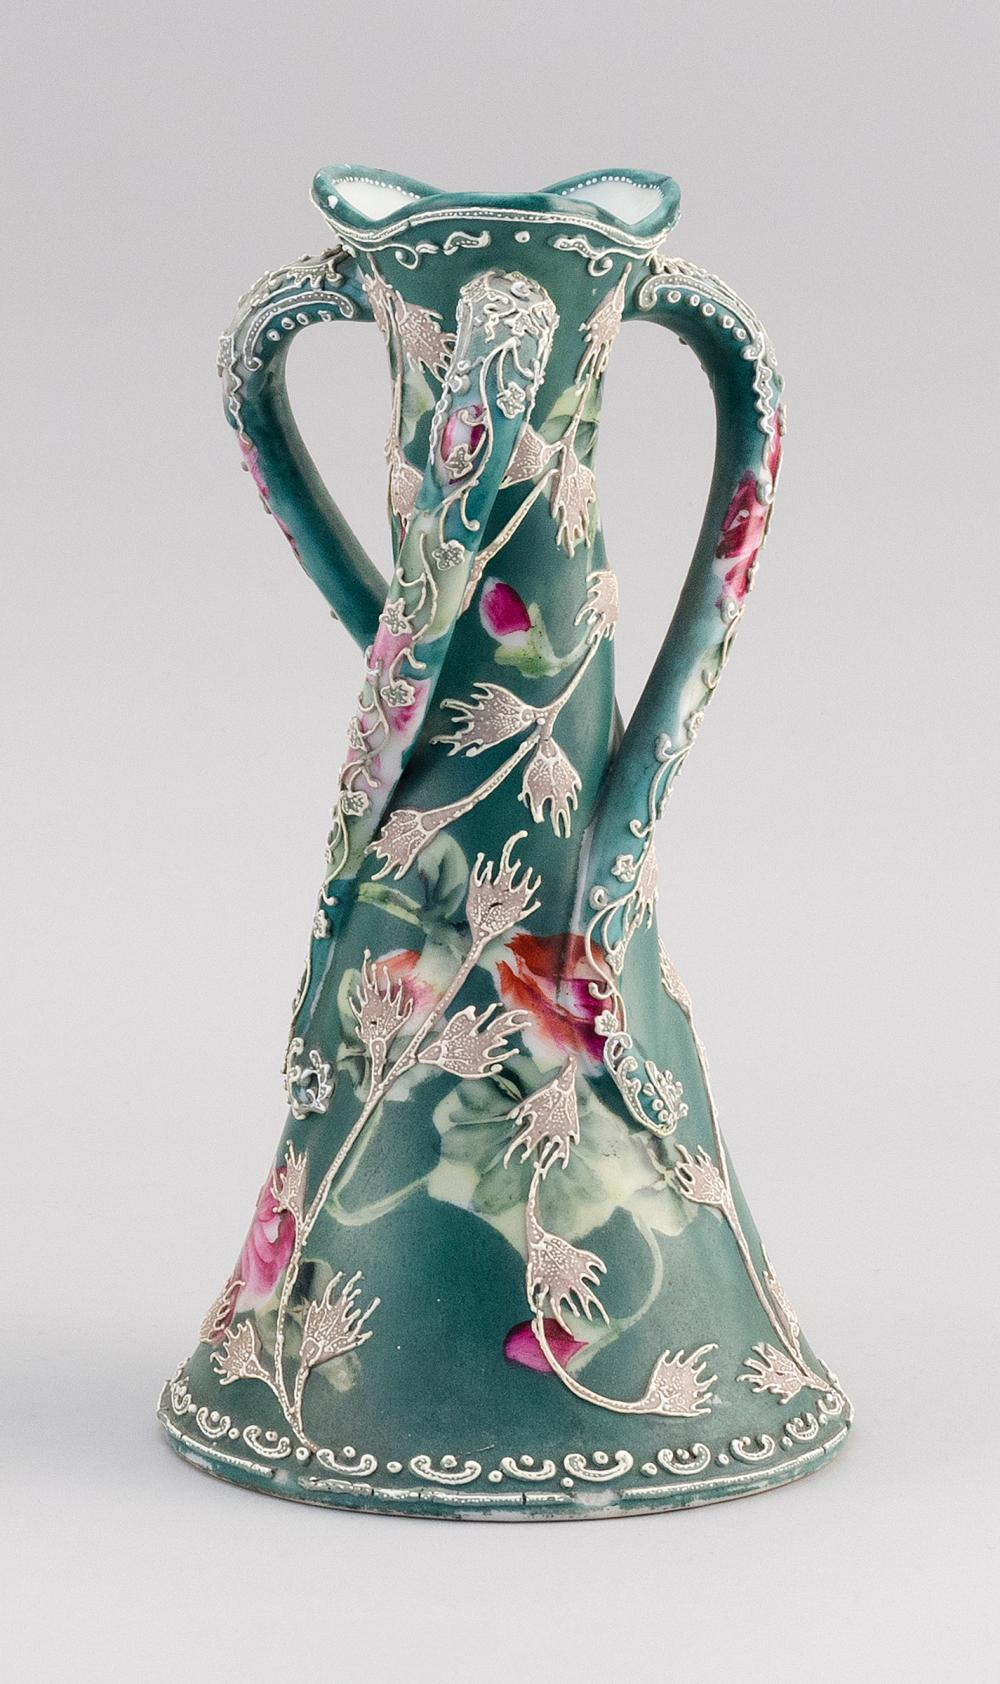 MORIAGE NIPPON PORCELAIN VASE Conical, with three twisting handles. Van Patten #90 mark on base. Height 10